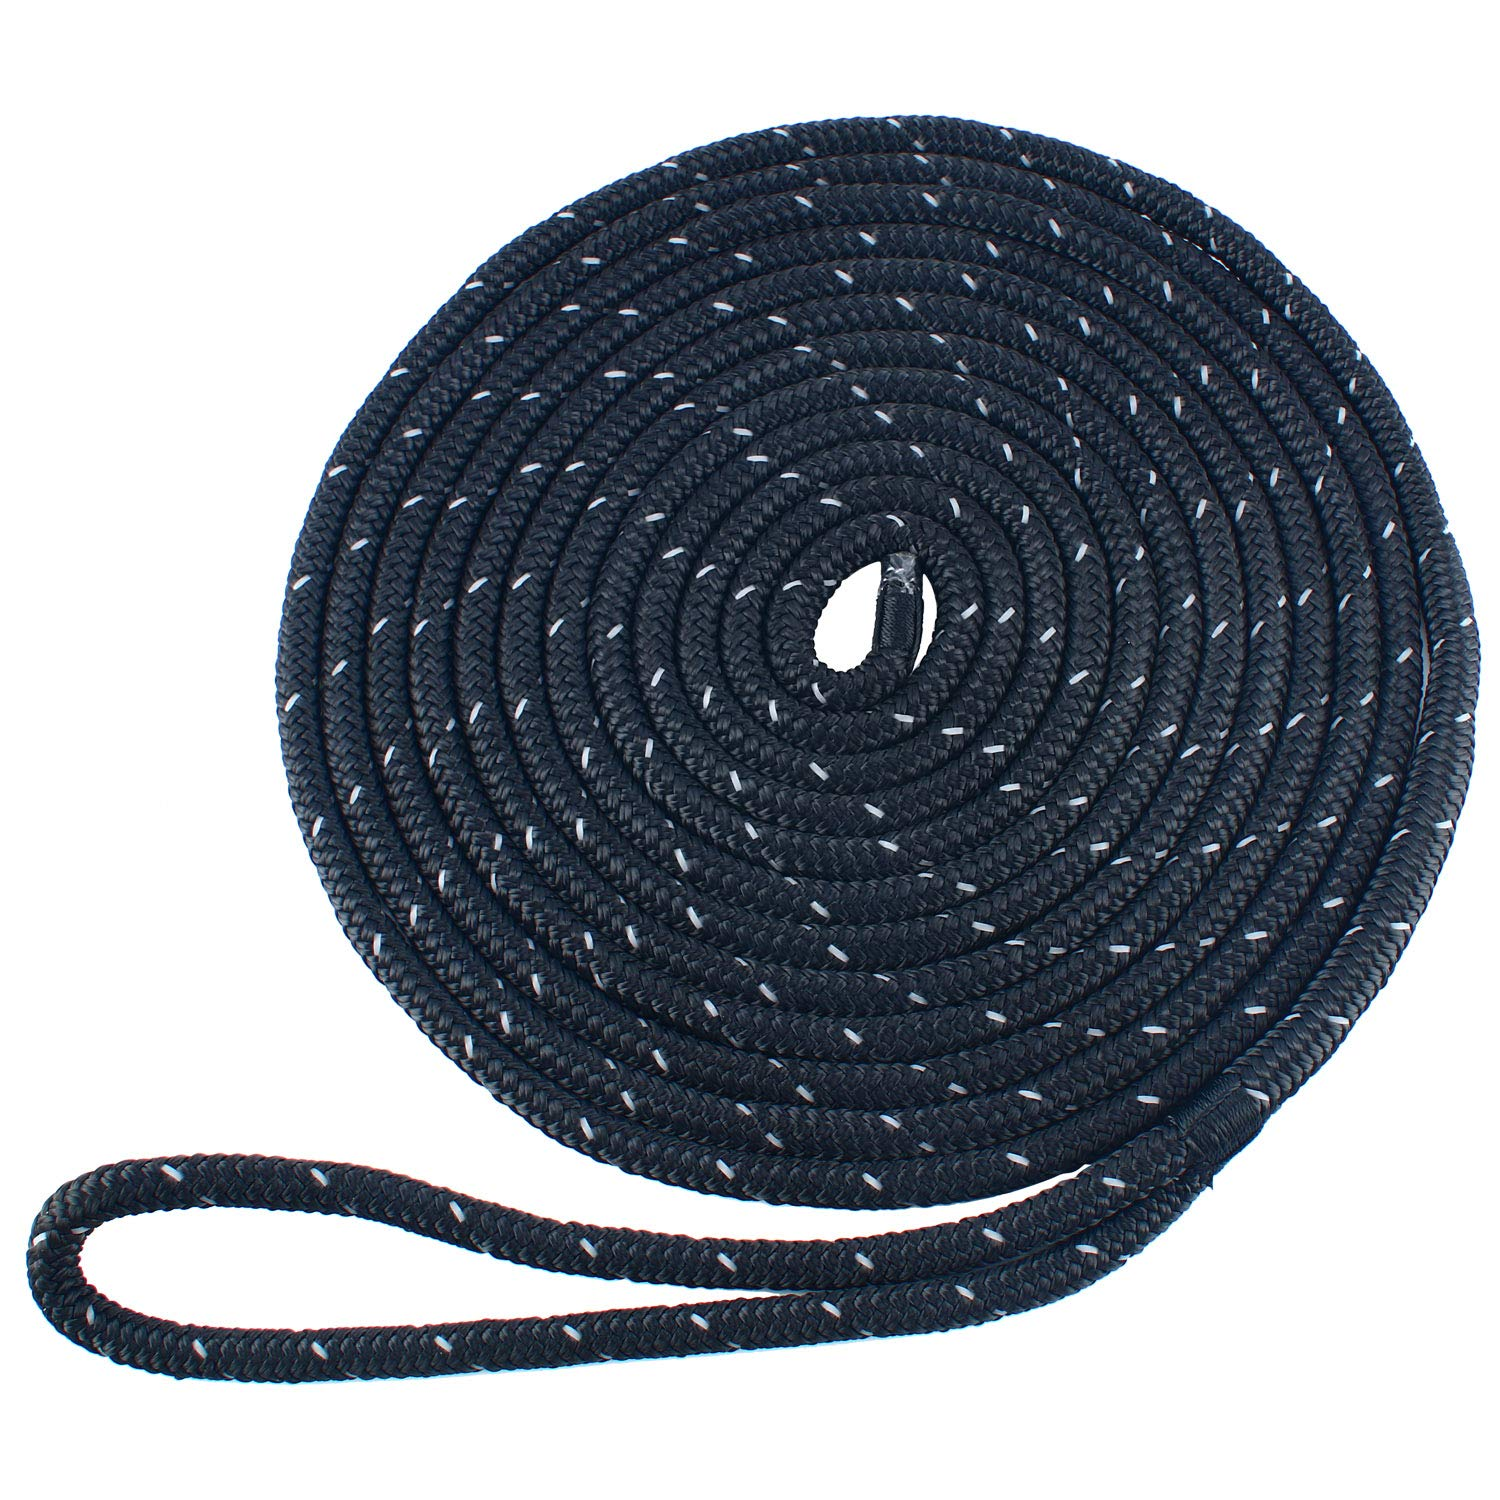 Amarine Made 3/8 Inch 20 FT Reflective Double Braid Nylon Dockline Dock Line Mooring Rope Double Braided Dock Line, Color: Black, White, Blue